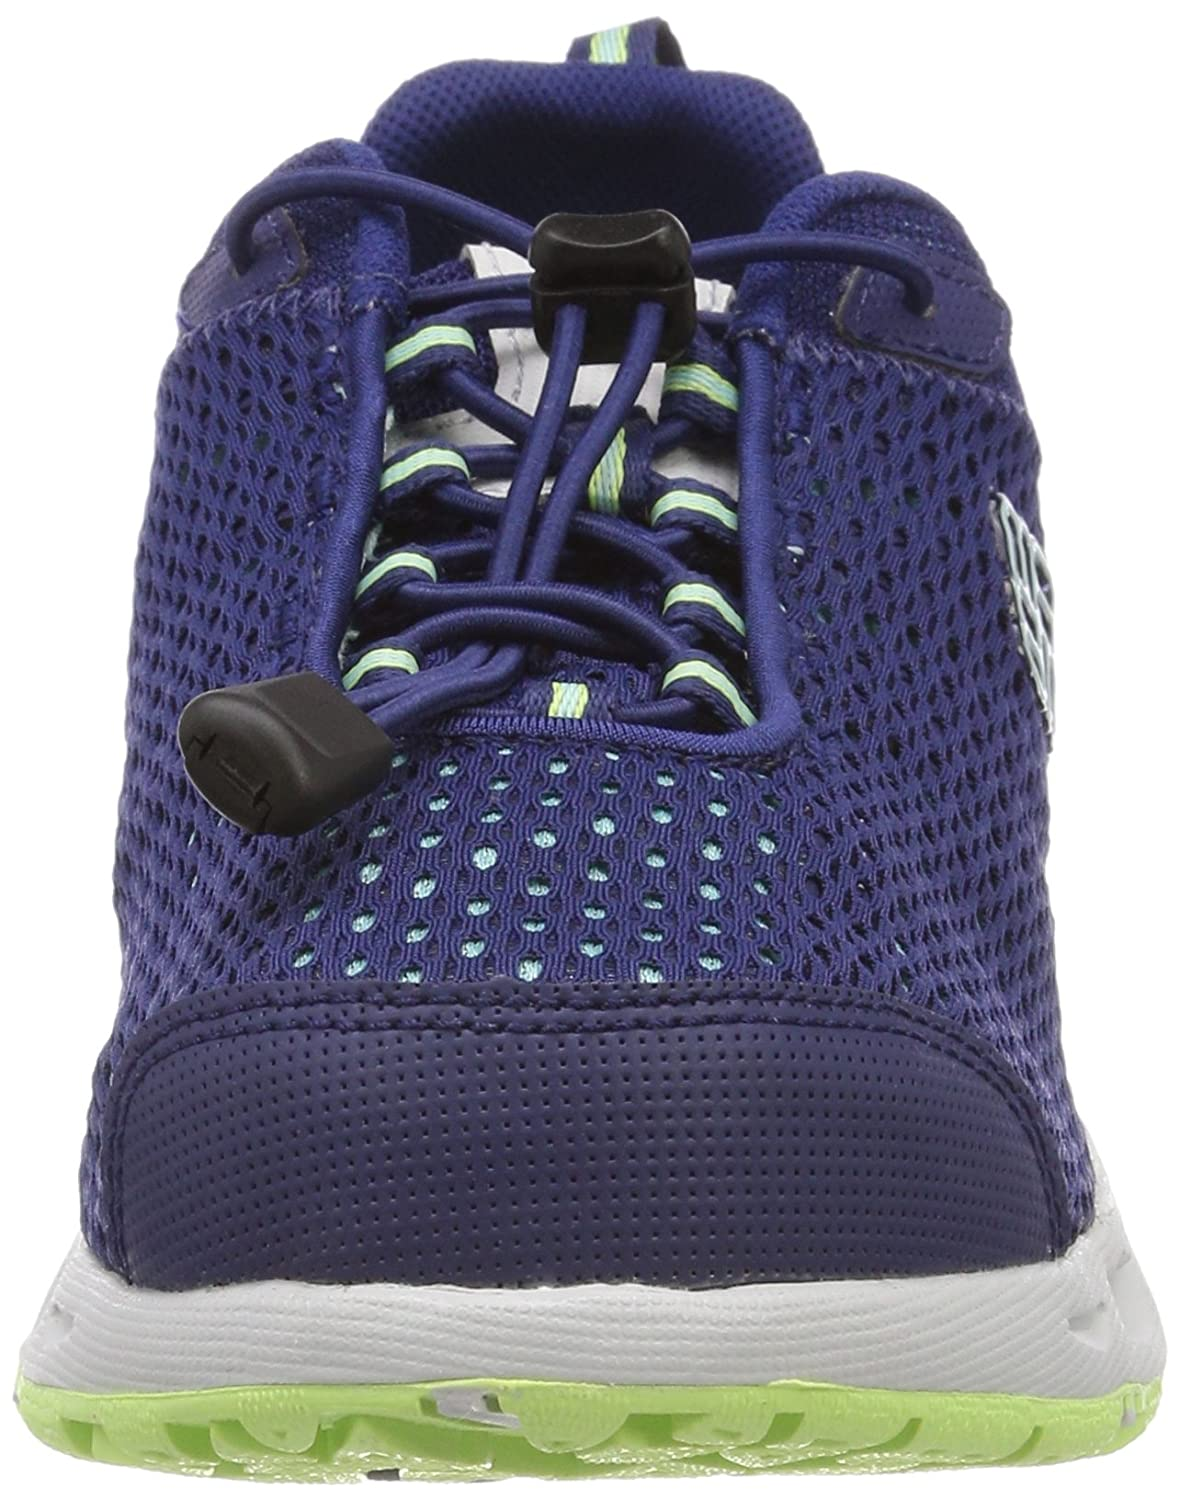 Columbia Youth Drainmaker III Zapatillas Impermeables para Ni/ños